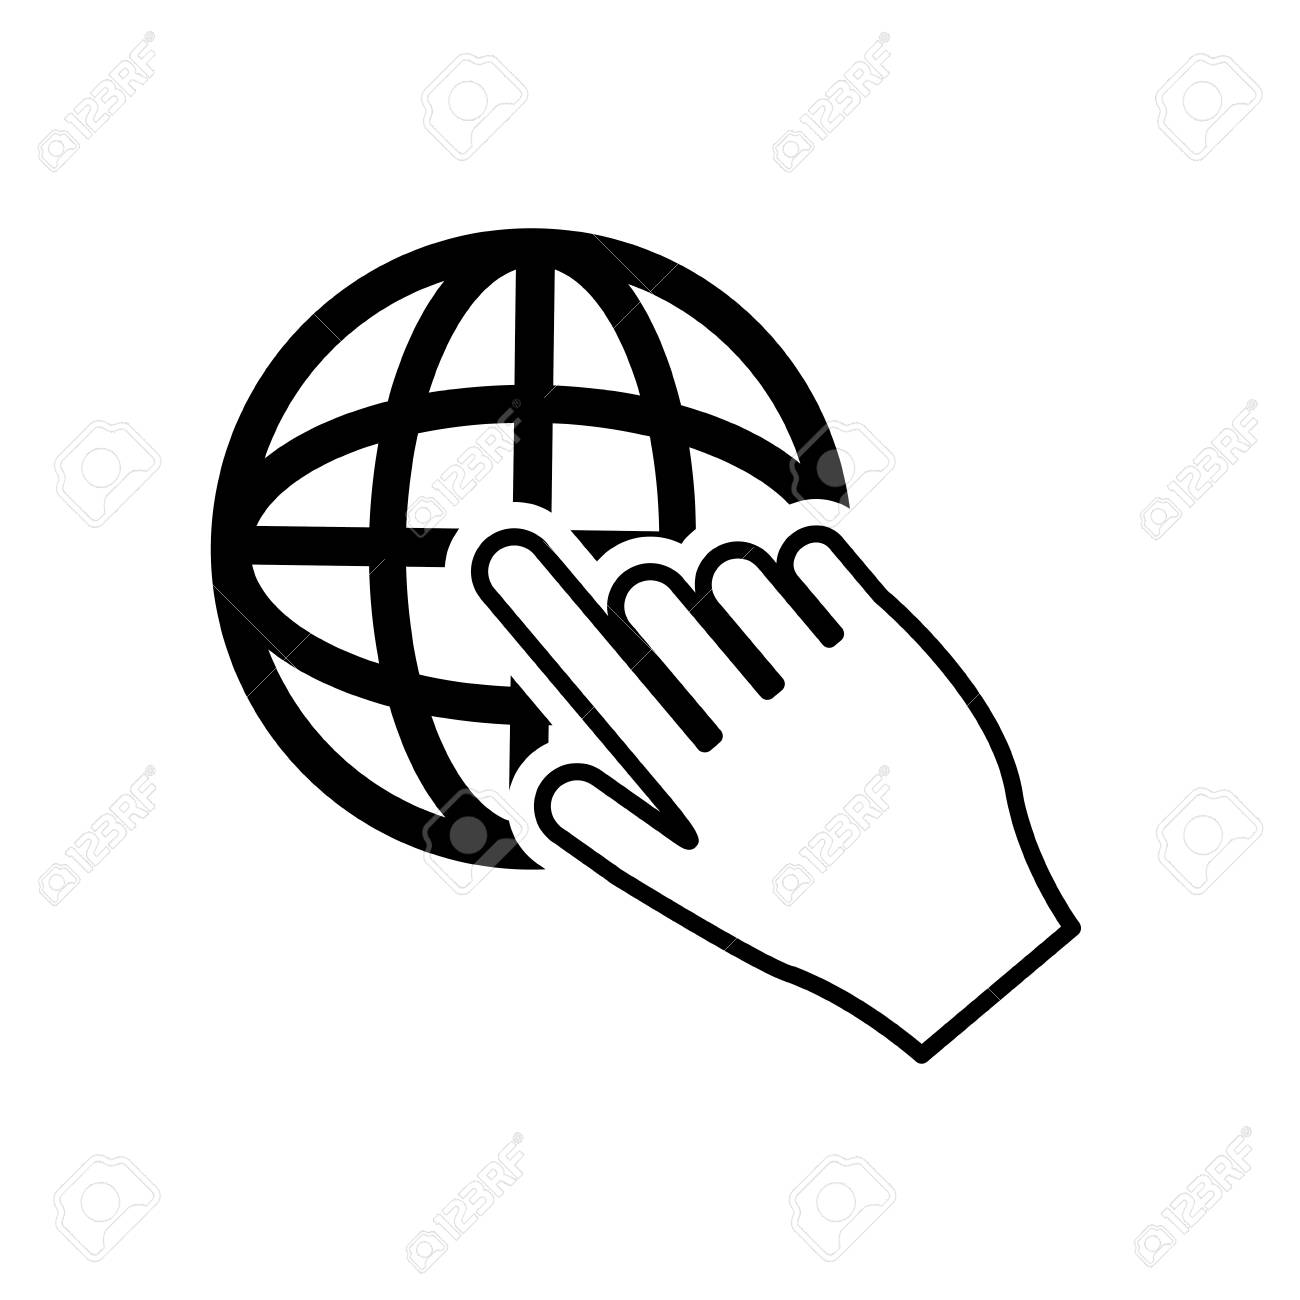 hight resolution of flat design earth globe diagram and hand pointer icon vector illustration stock vector 62297820